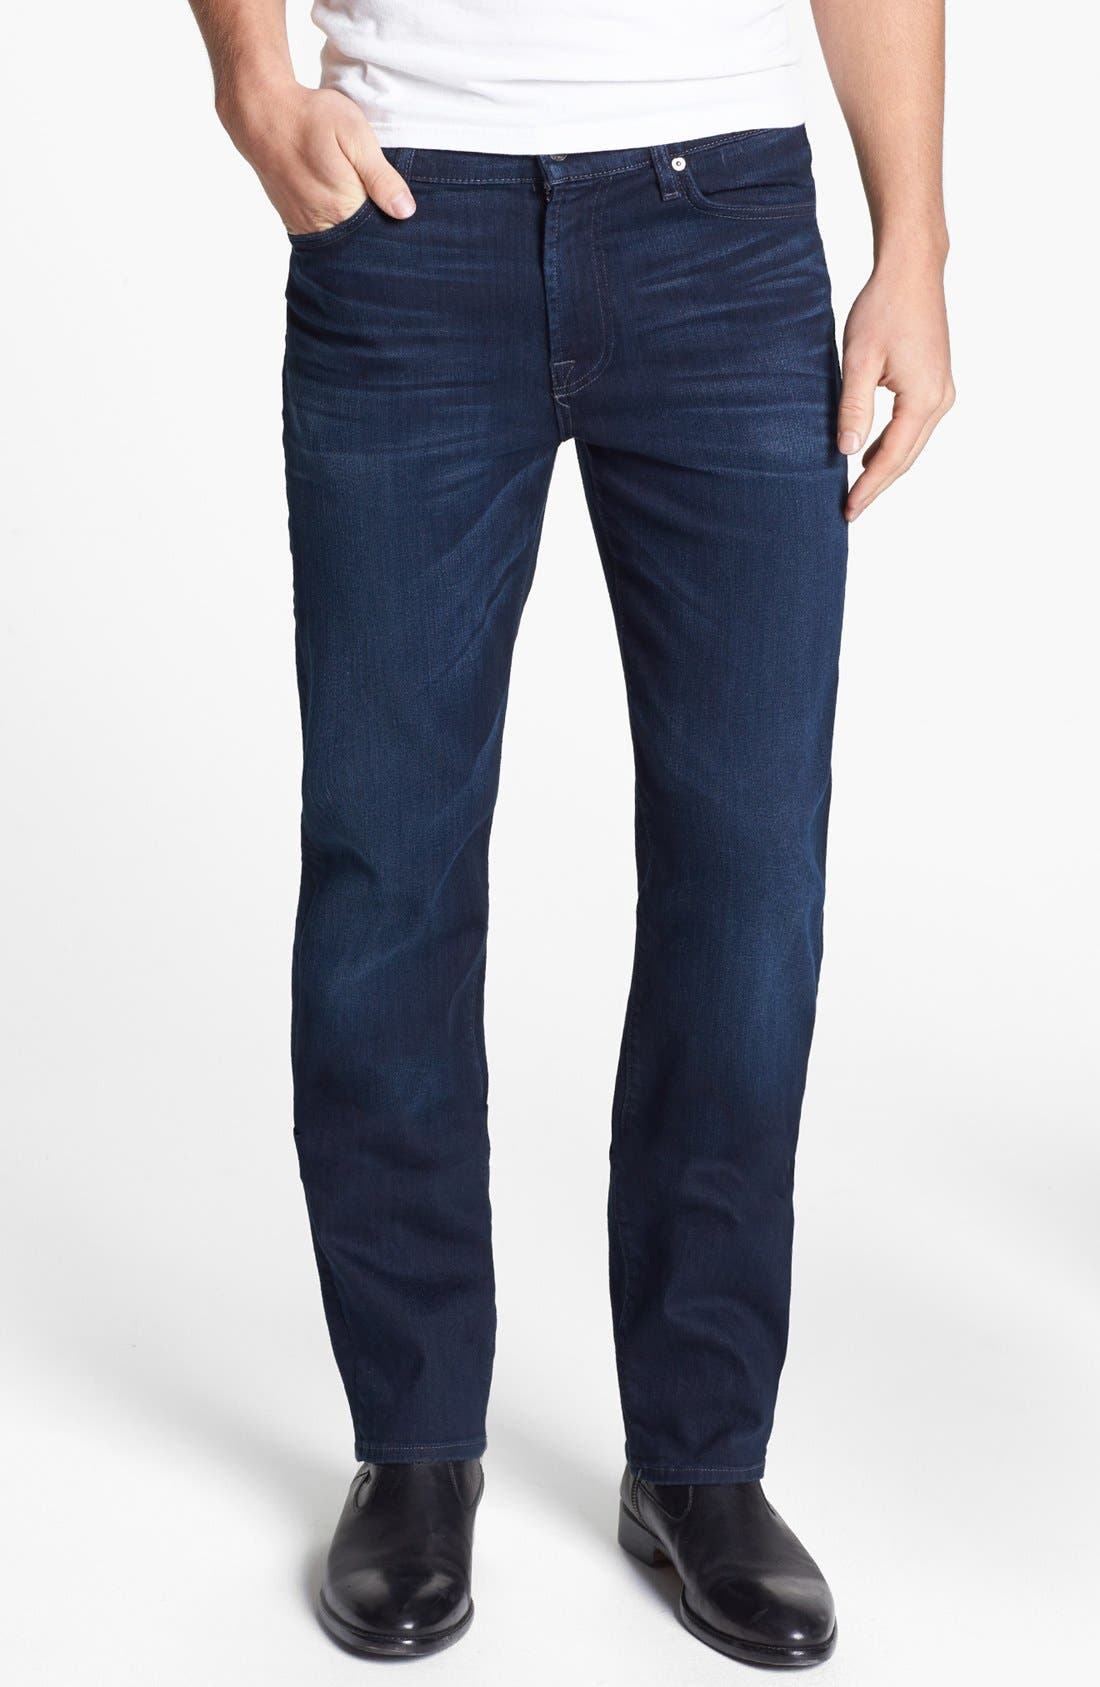 'Slimmy - Luxe Performance' Slim Fit Jeans,                         Main,                         color, 402